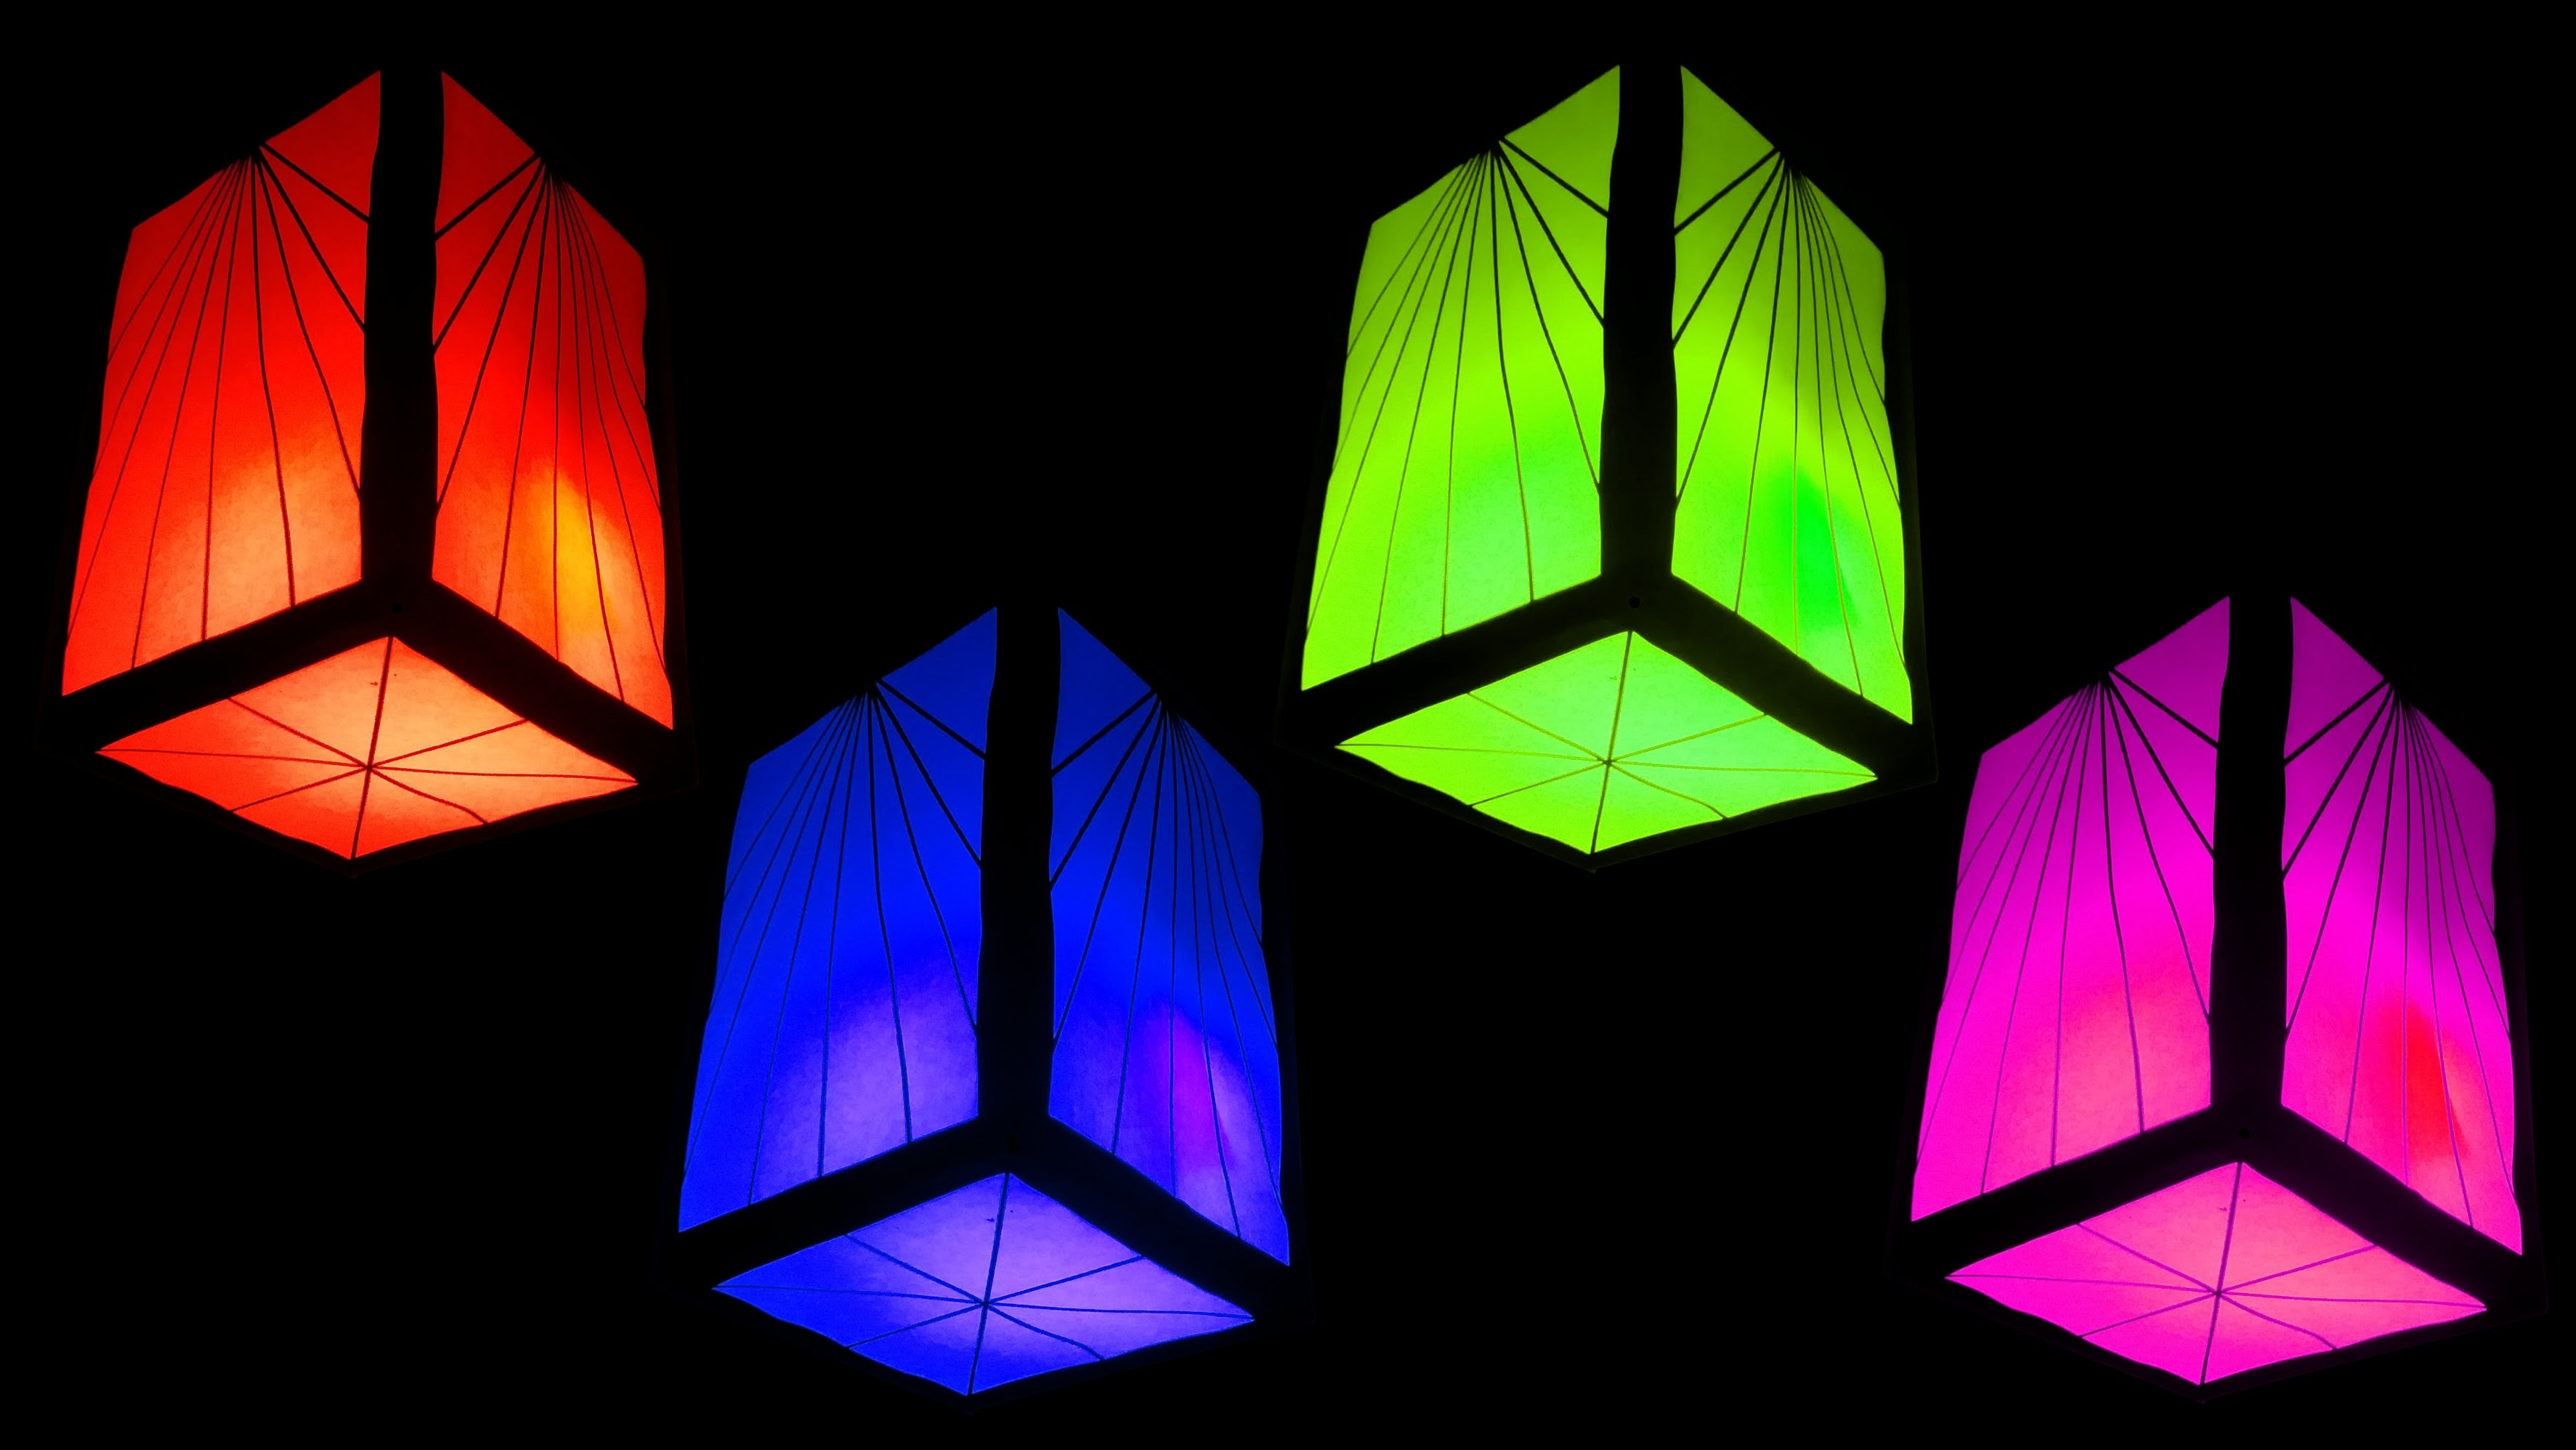 paper lanters A paper lantern is a lantern made of thin, brightly colored paper paper lanterns come in various shapes and sizes, as well as various methods of construction in their simplest form, they are simply a paper bag with a candle placed inside, although more complicated lanterns consist of a collapsible bamboo or metal frame of hoops covered with.